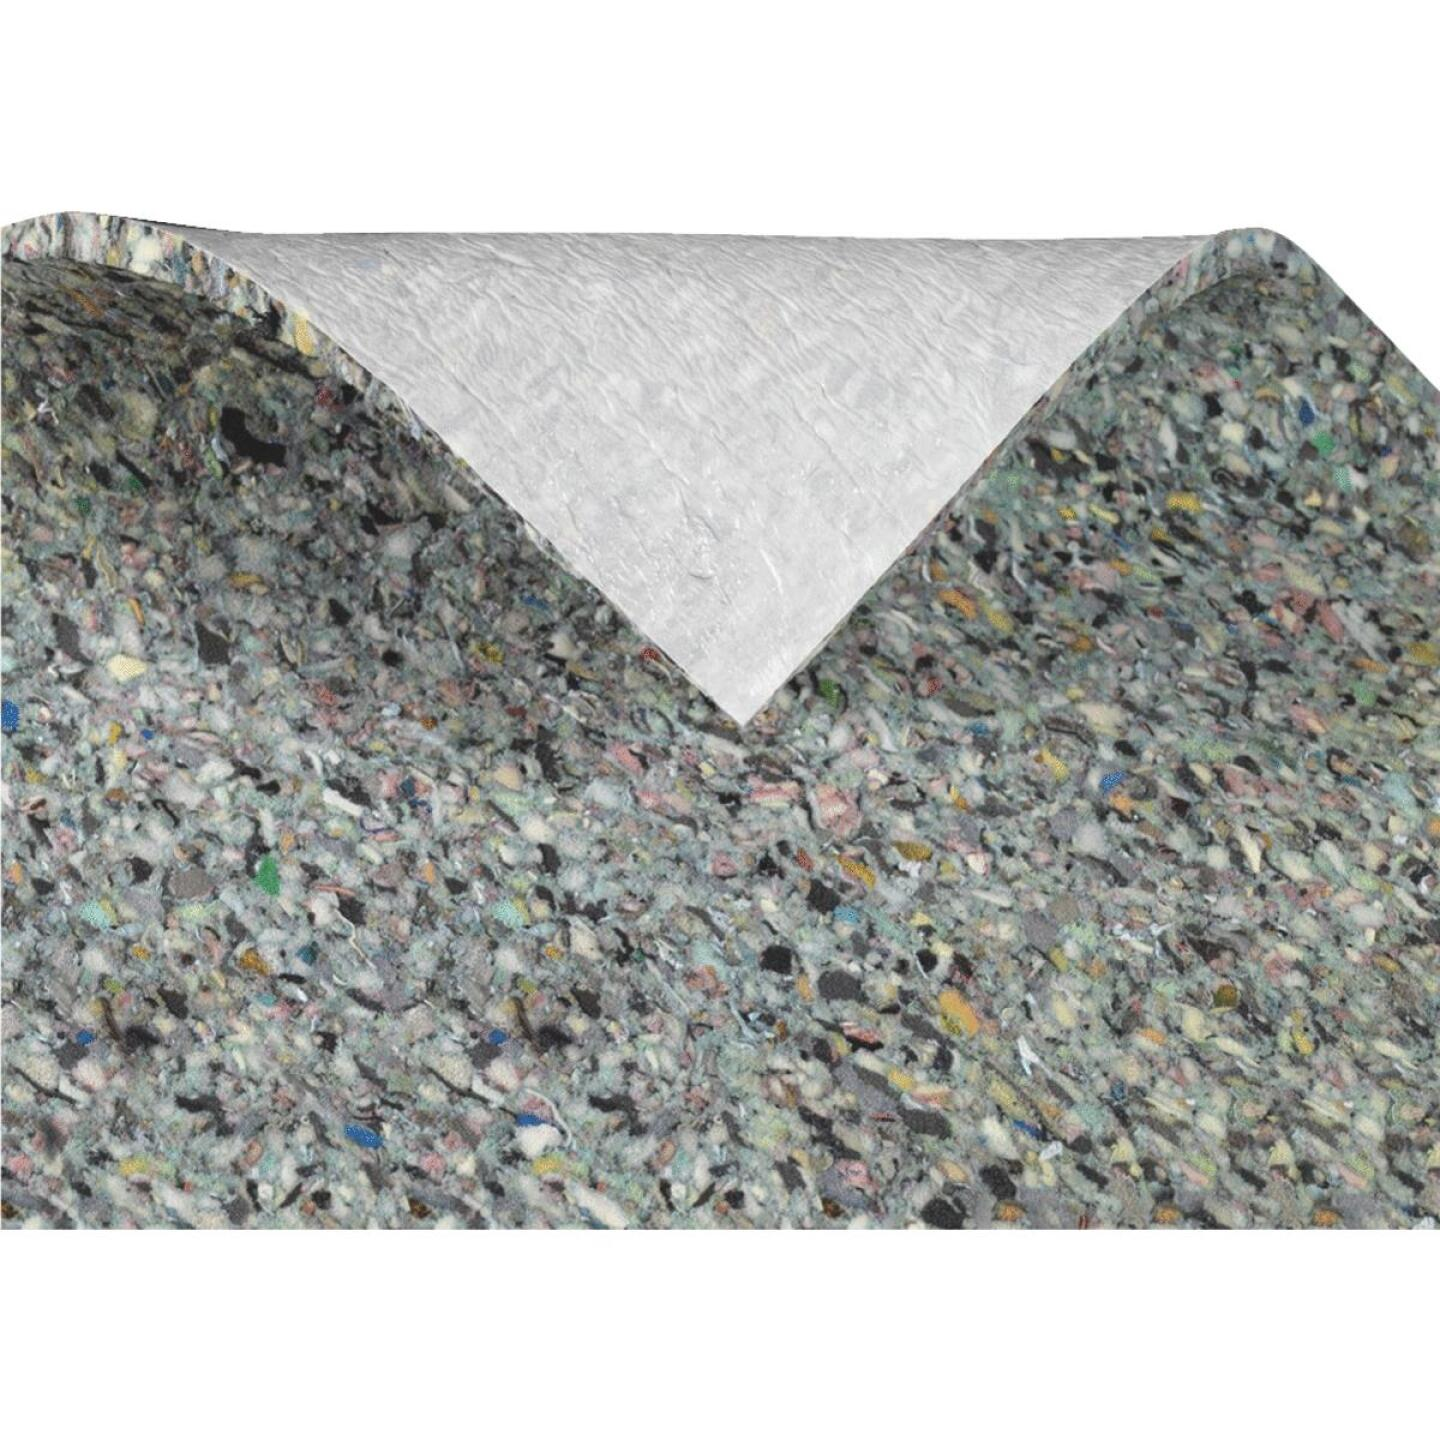 Shaw Superior Plus 7/16 In. Thick 7 Lb. Density Carpet Pad with Spill Guard Image 1